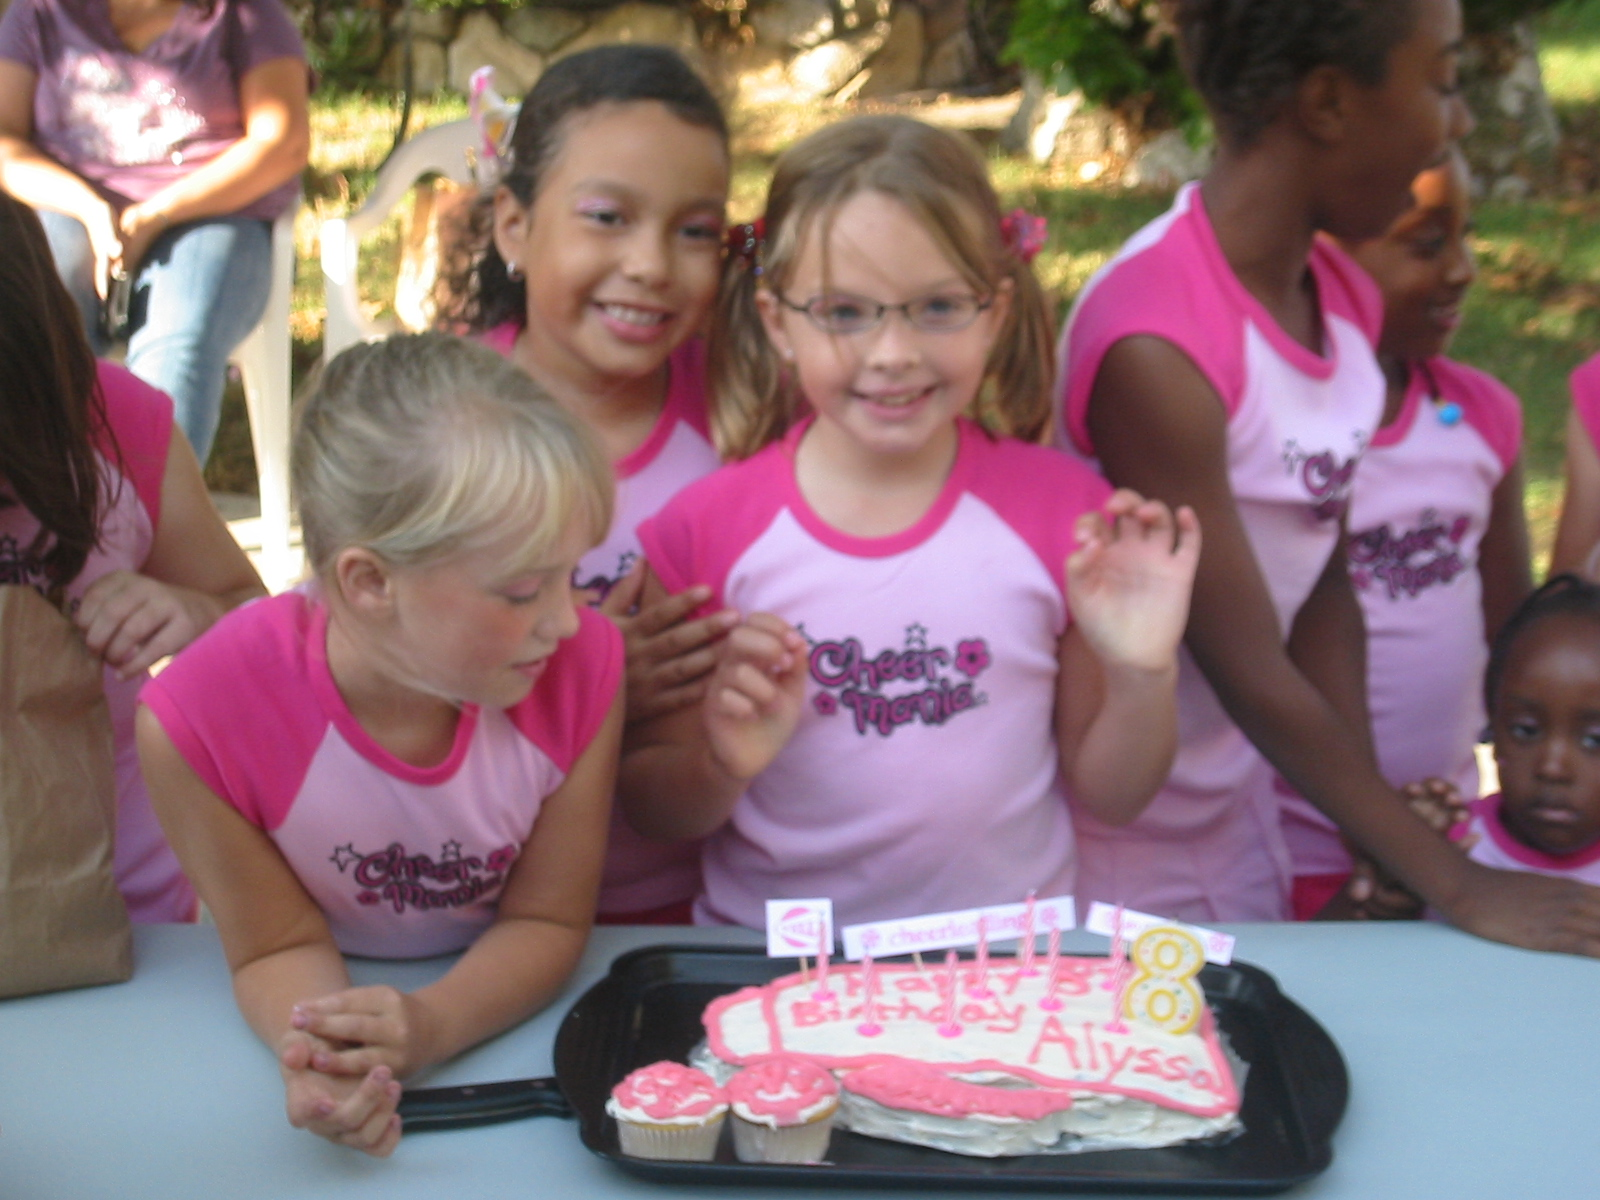 Cheer Mania Party Cake